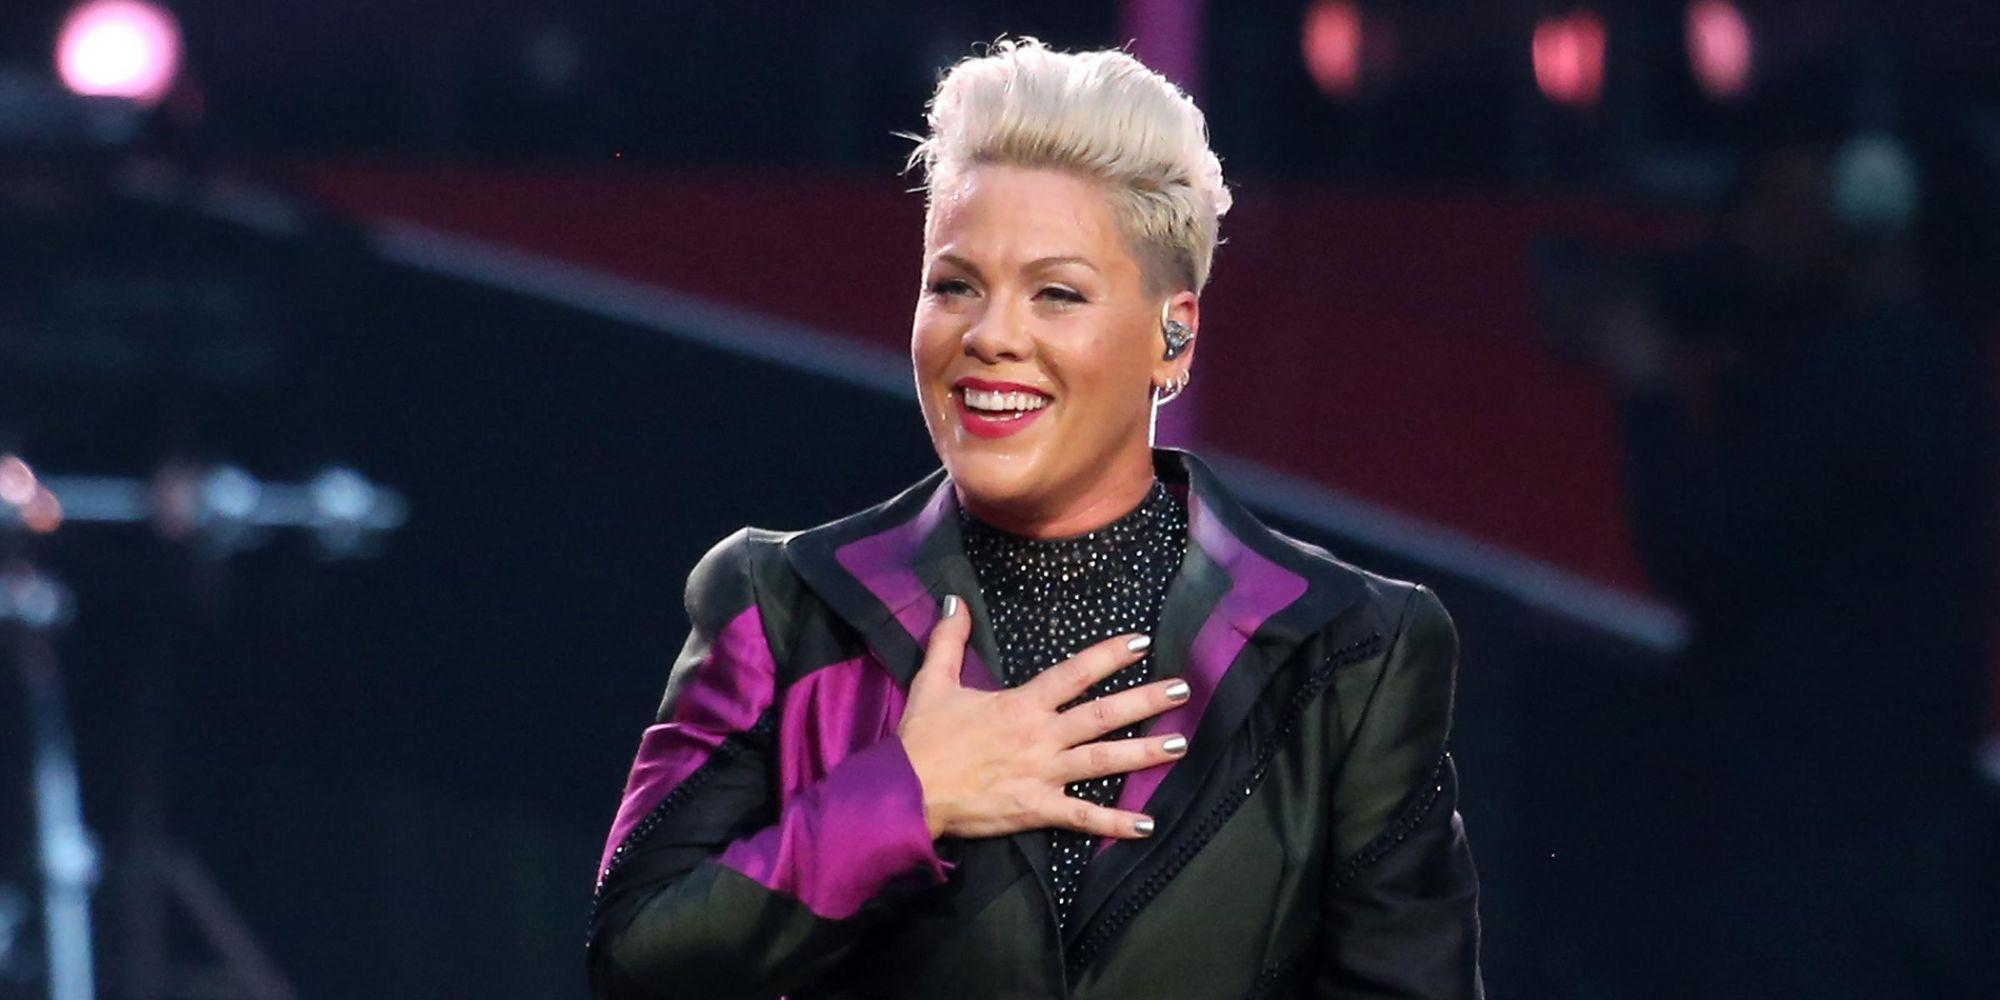 Pink Introduces New Puppy With Adorable Family Photo